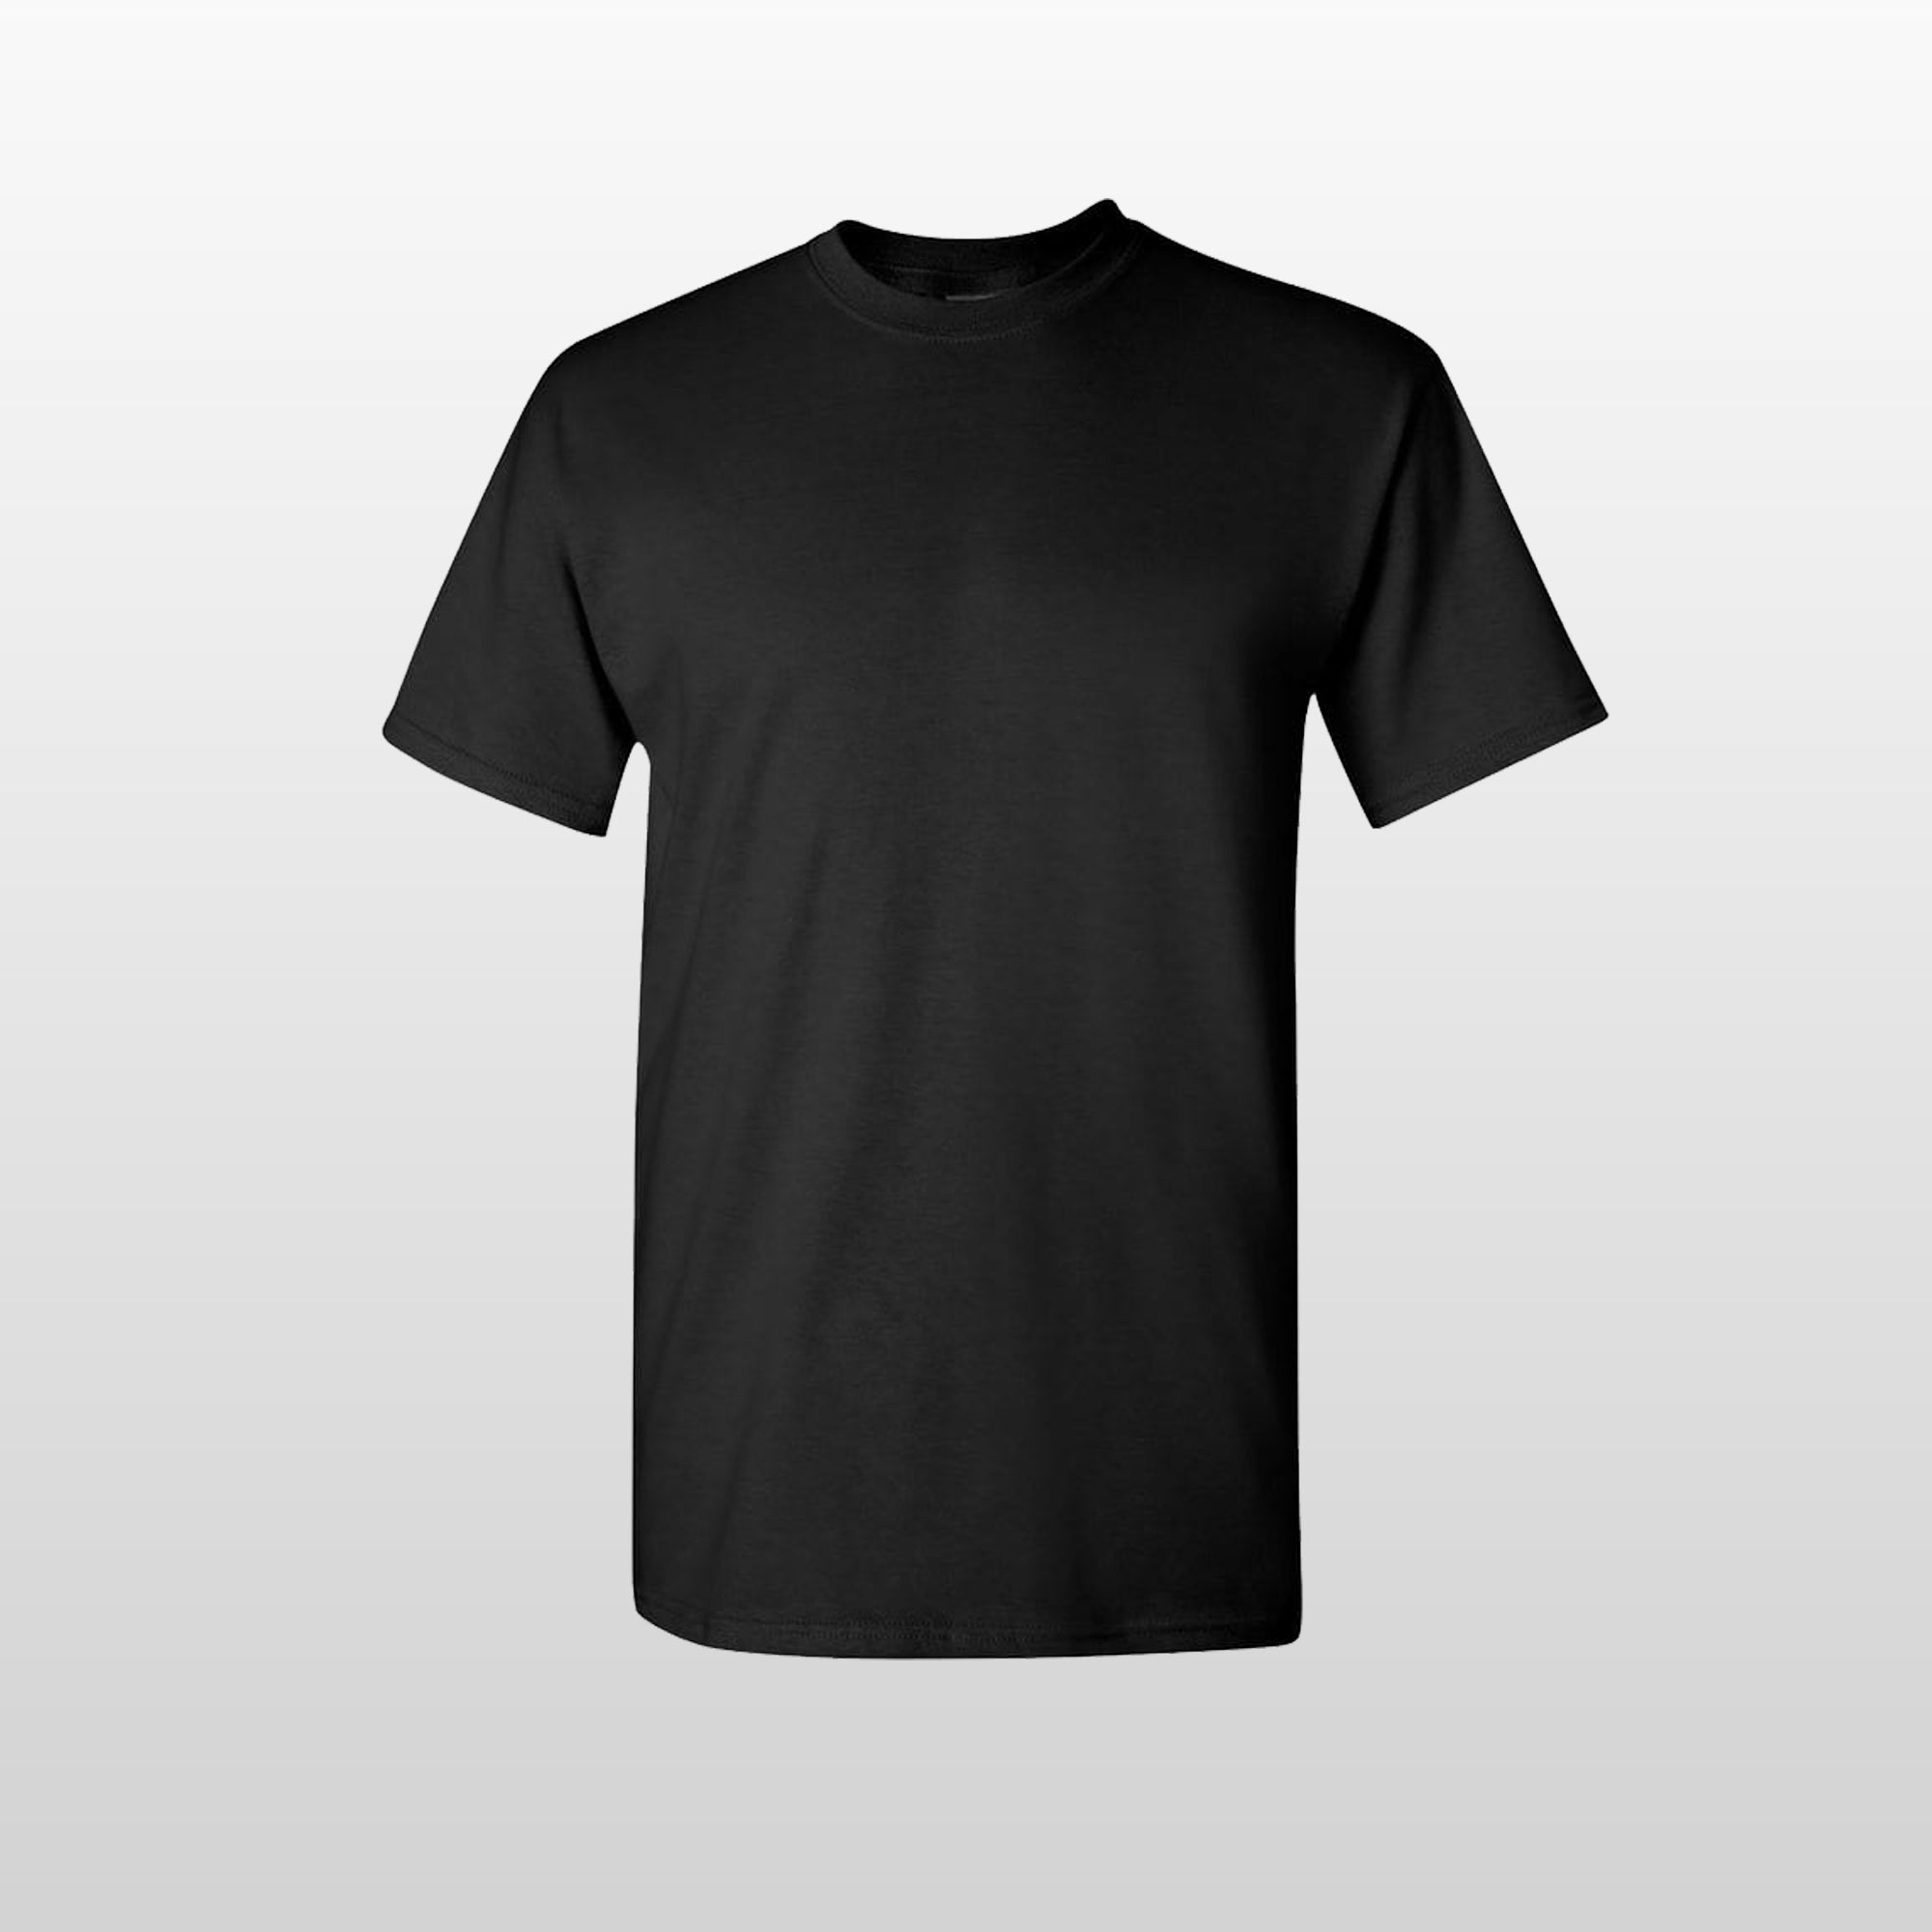 Adult Heavy Cotton T-Shirts